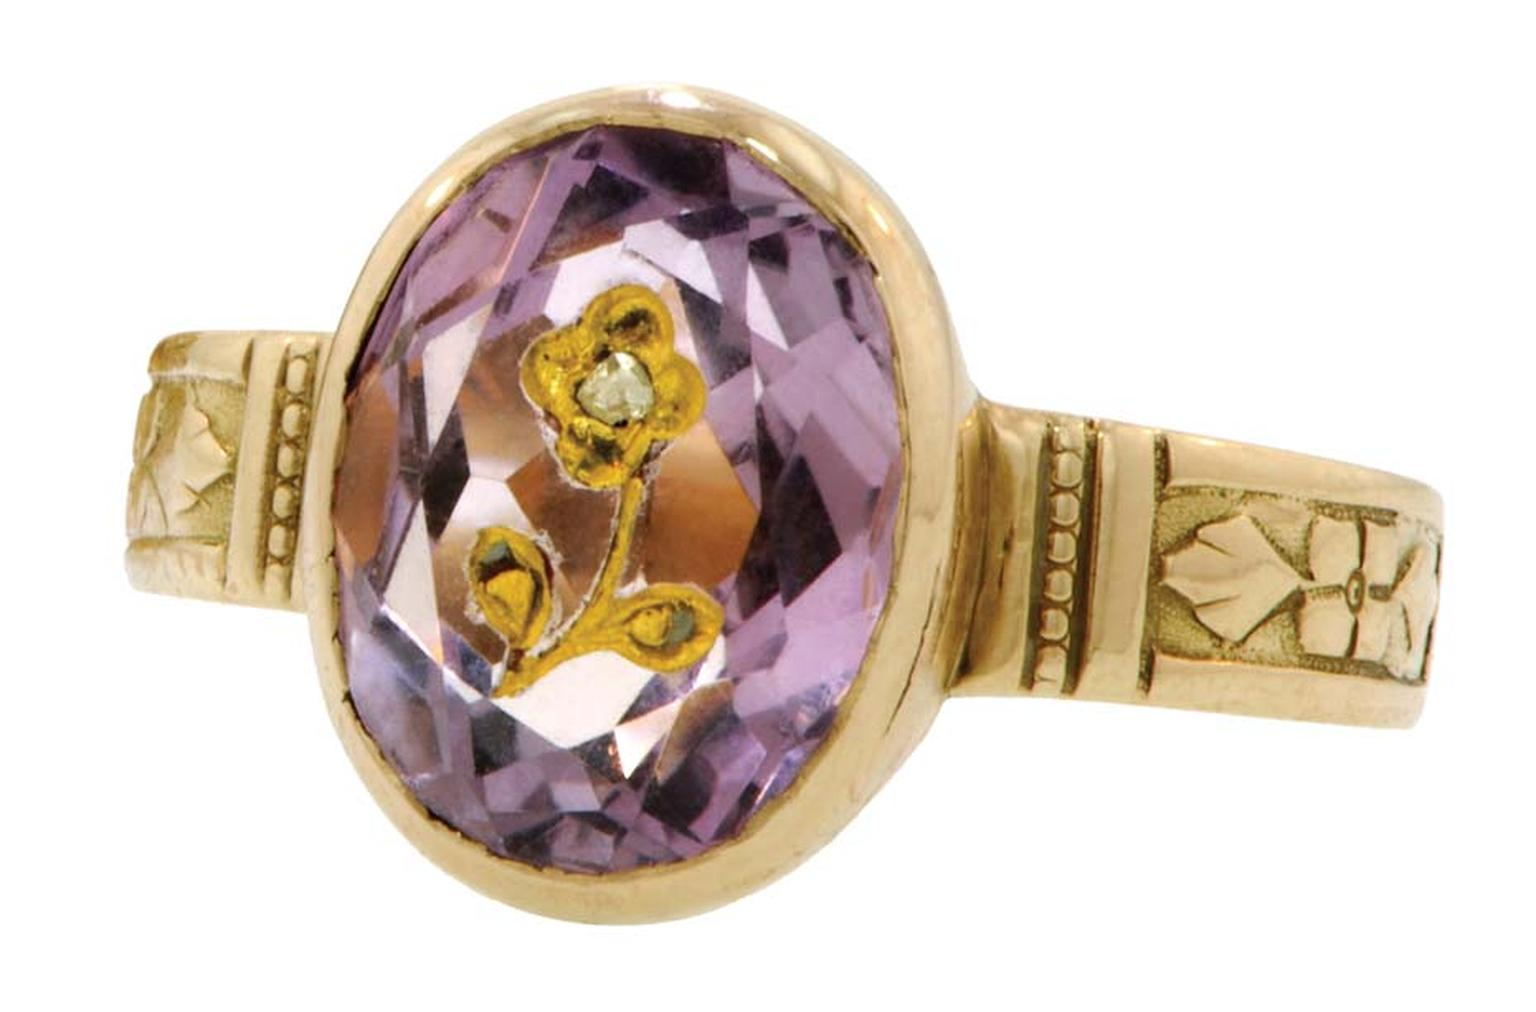 Forget-Me-Not gold ring with amethysts and diamonds, circa 1876.